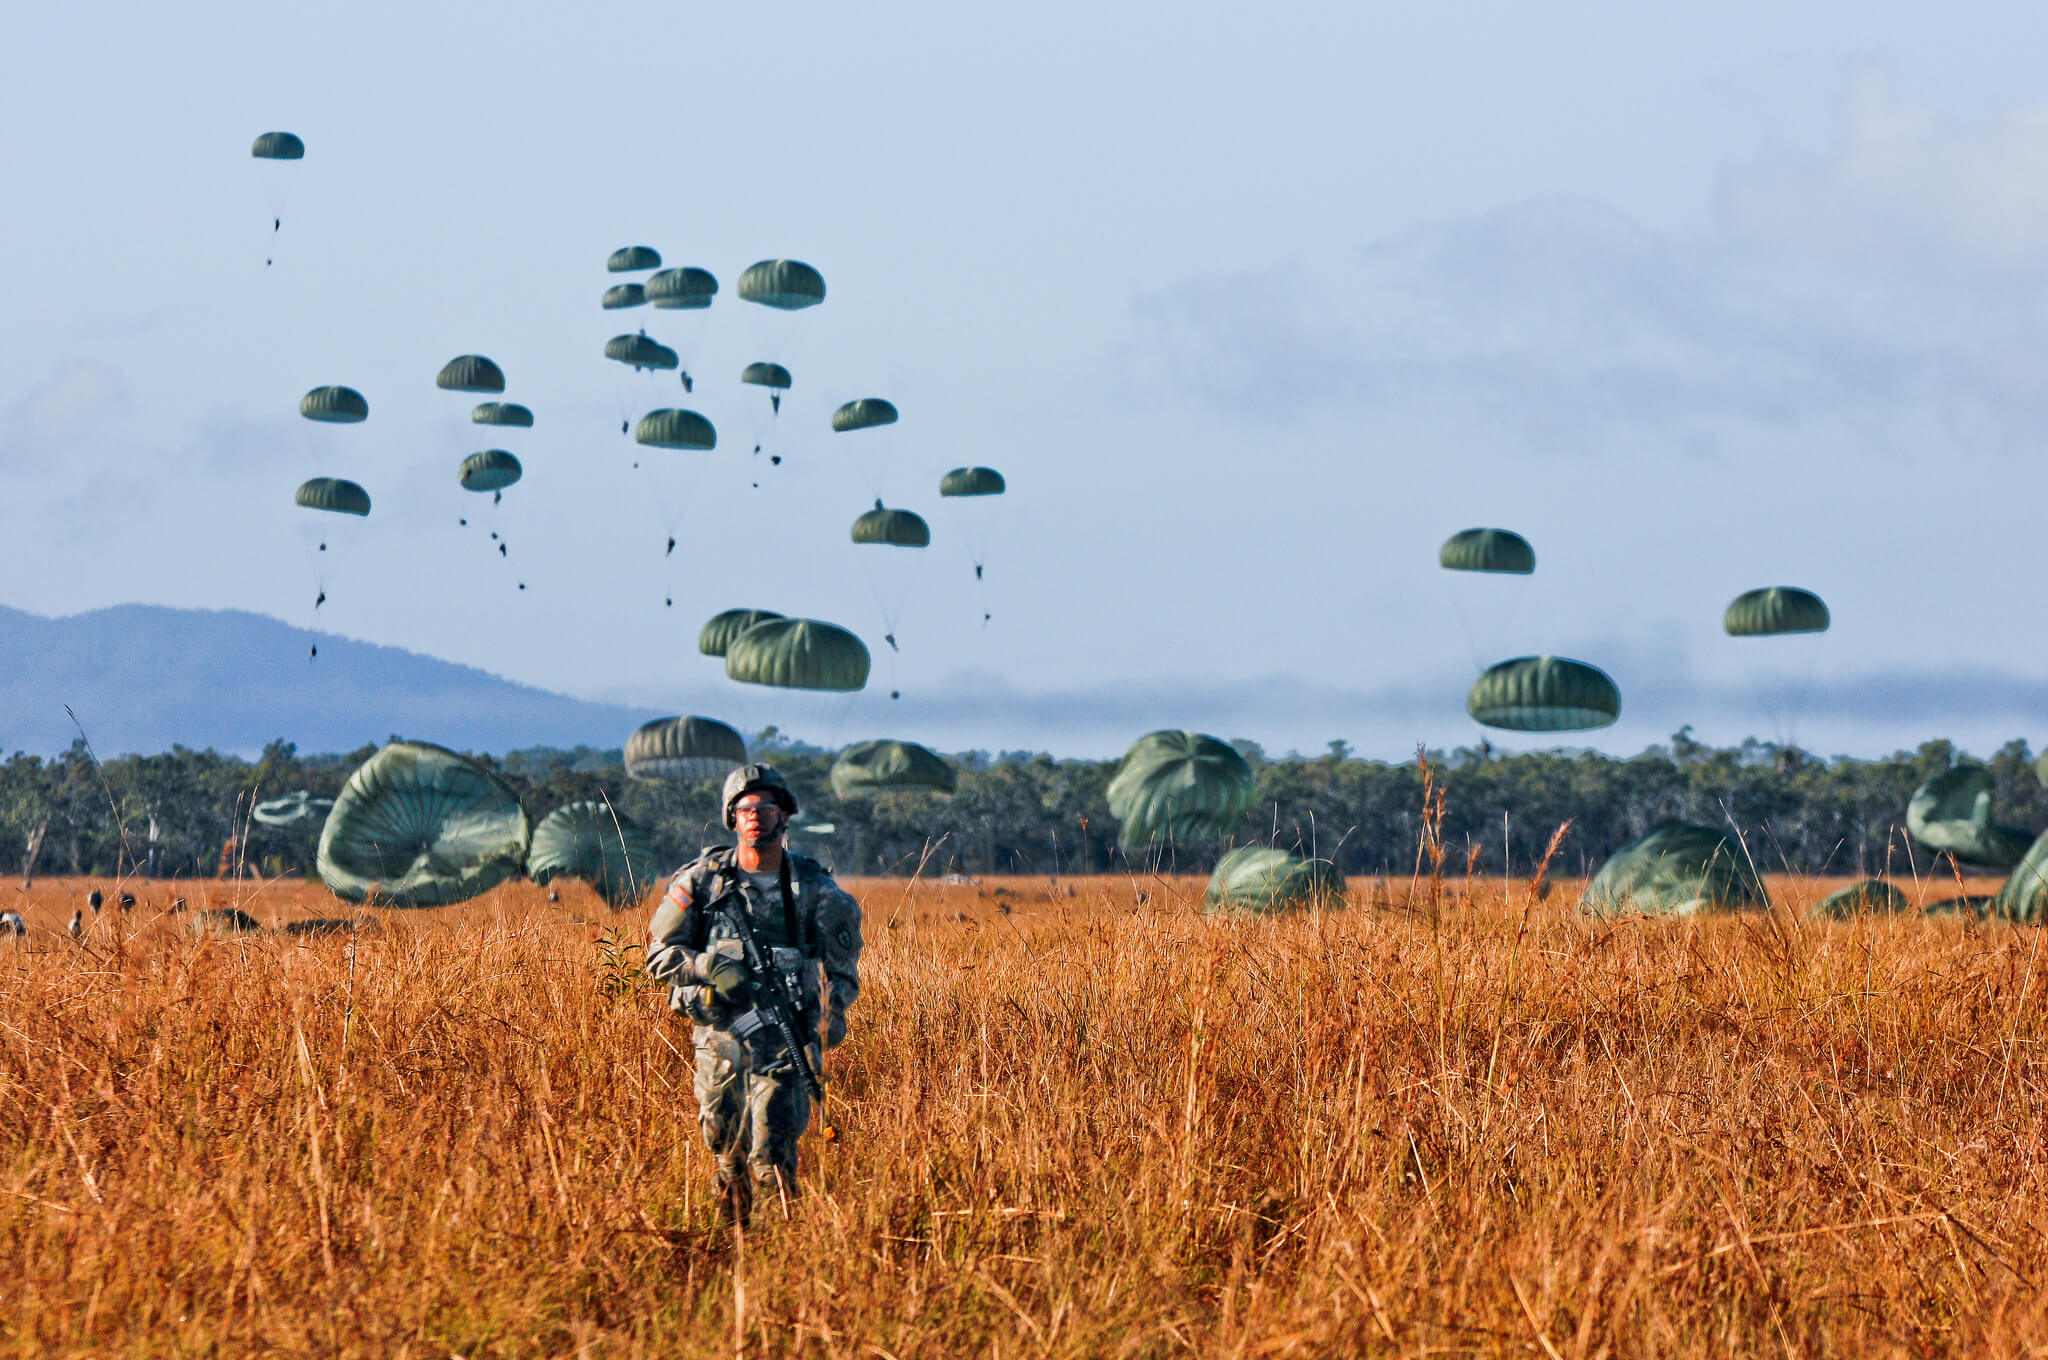 Paratroopers during a joint Australia and US military exercise. © DVIDSHUB / Flickr